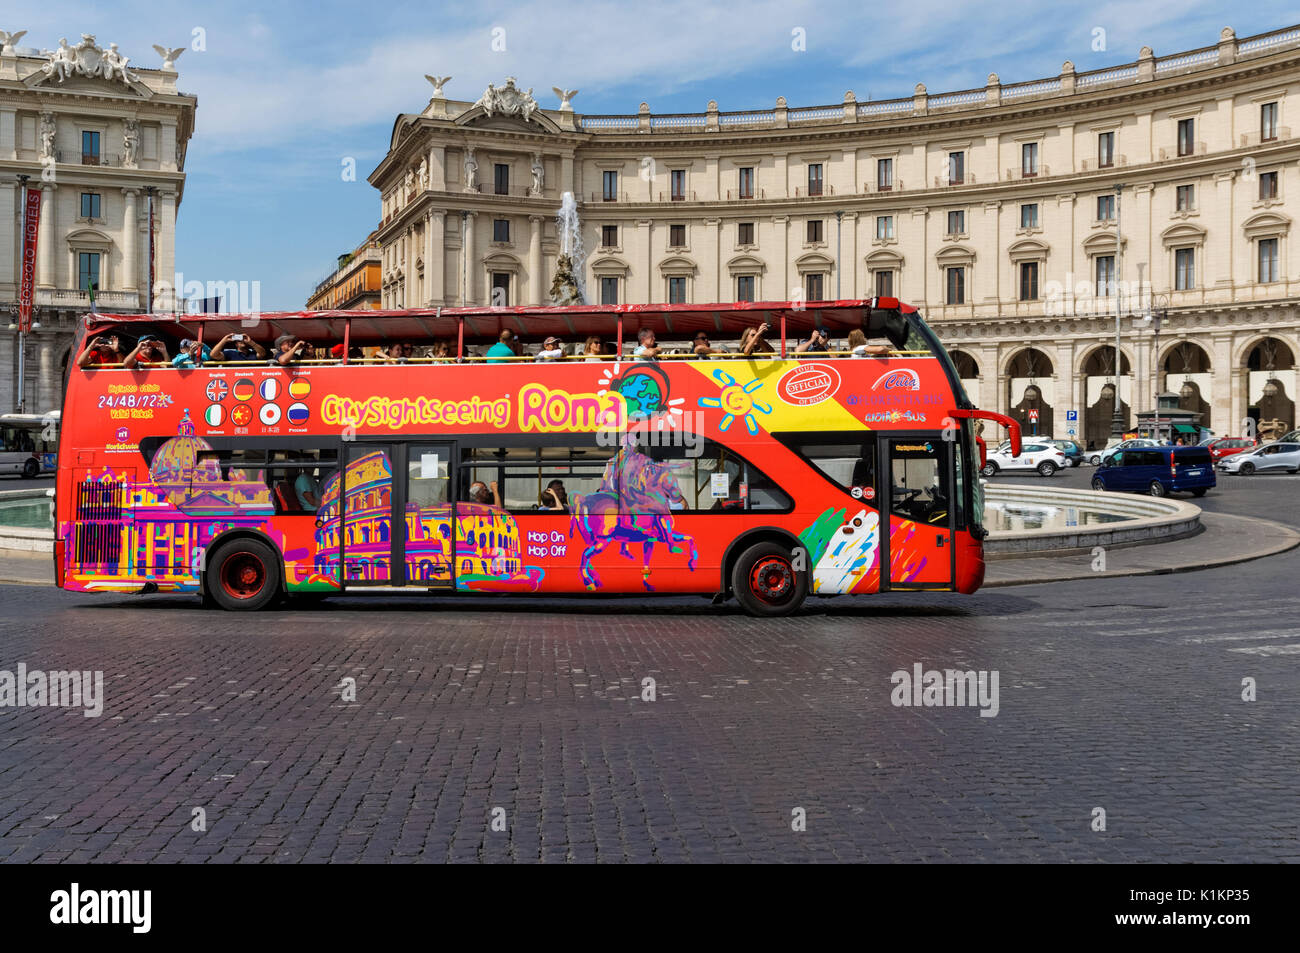 coach bus tour italy stock photos coach bus tour italy stock images alamy. Black Bedroom Furniture Sets. Home Design Ideas